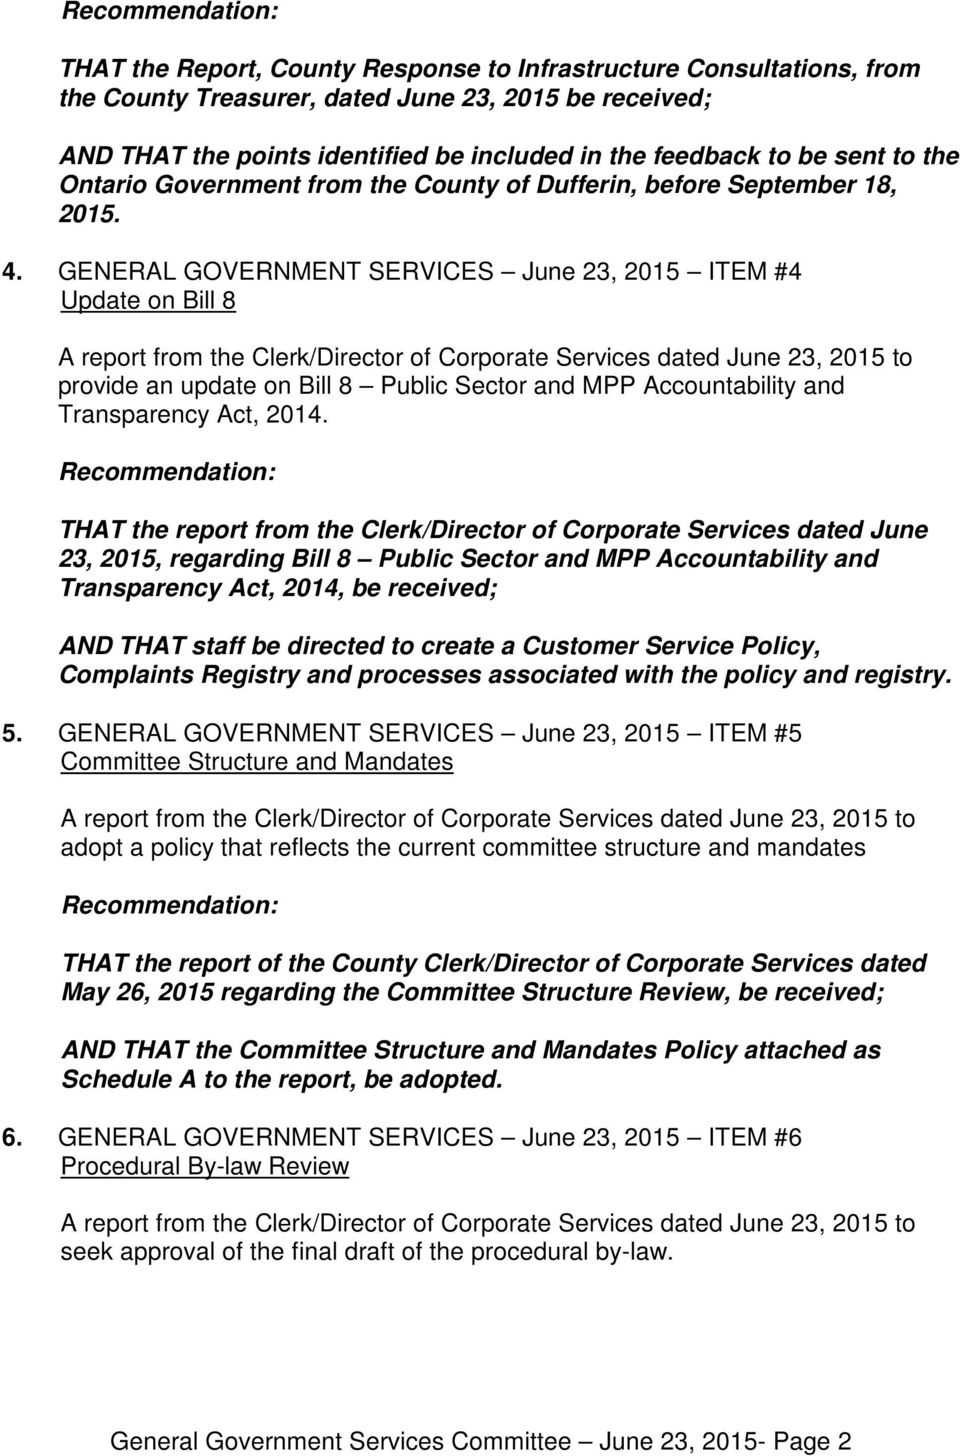 GENERAL GOVERNMENT SERVICES June 23, 2015 ITEM #4 Update on Bill 8 A report from the Clerk/Director of Corporate Services dated June 23, 2015 to provide an update on Bill 8 Public Sector and MPP